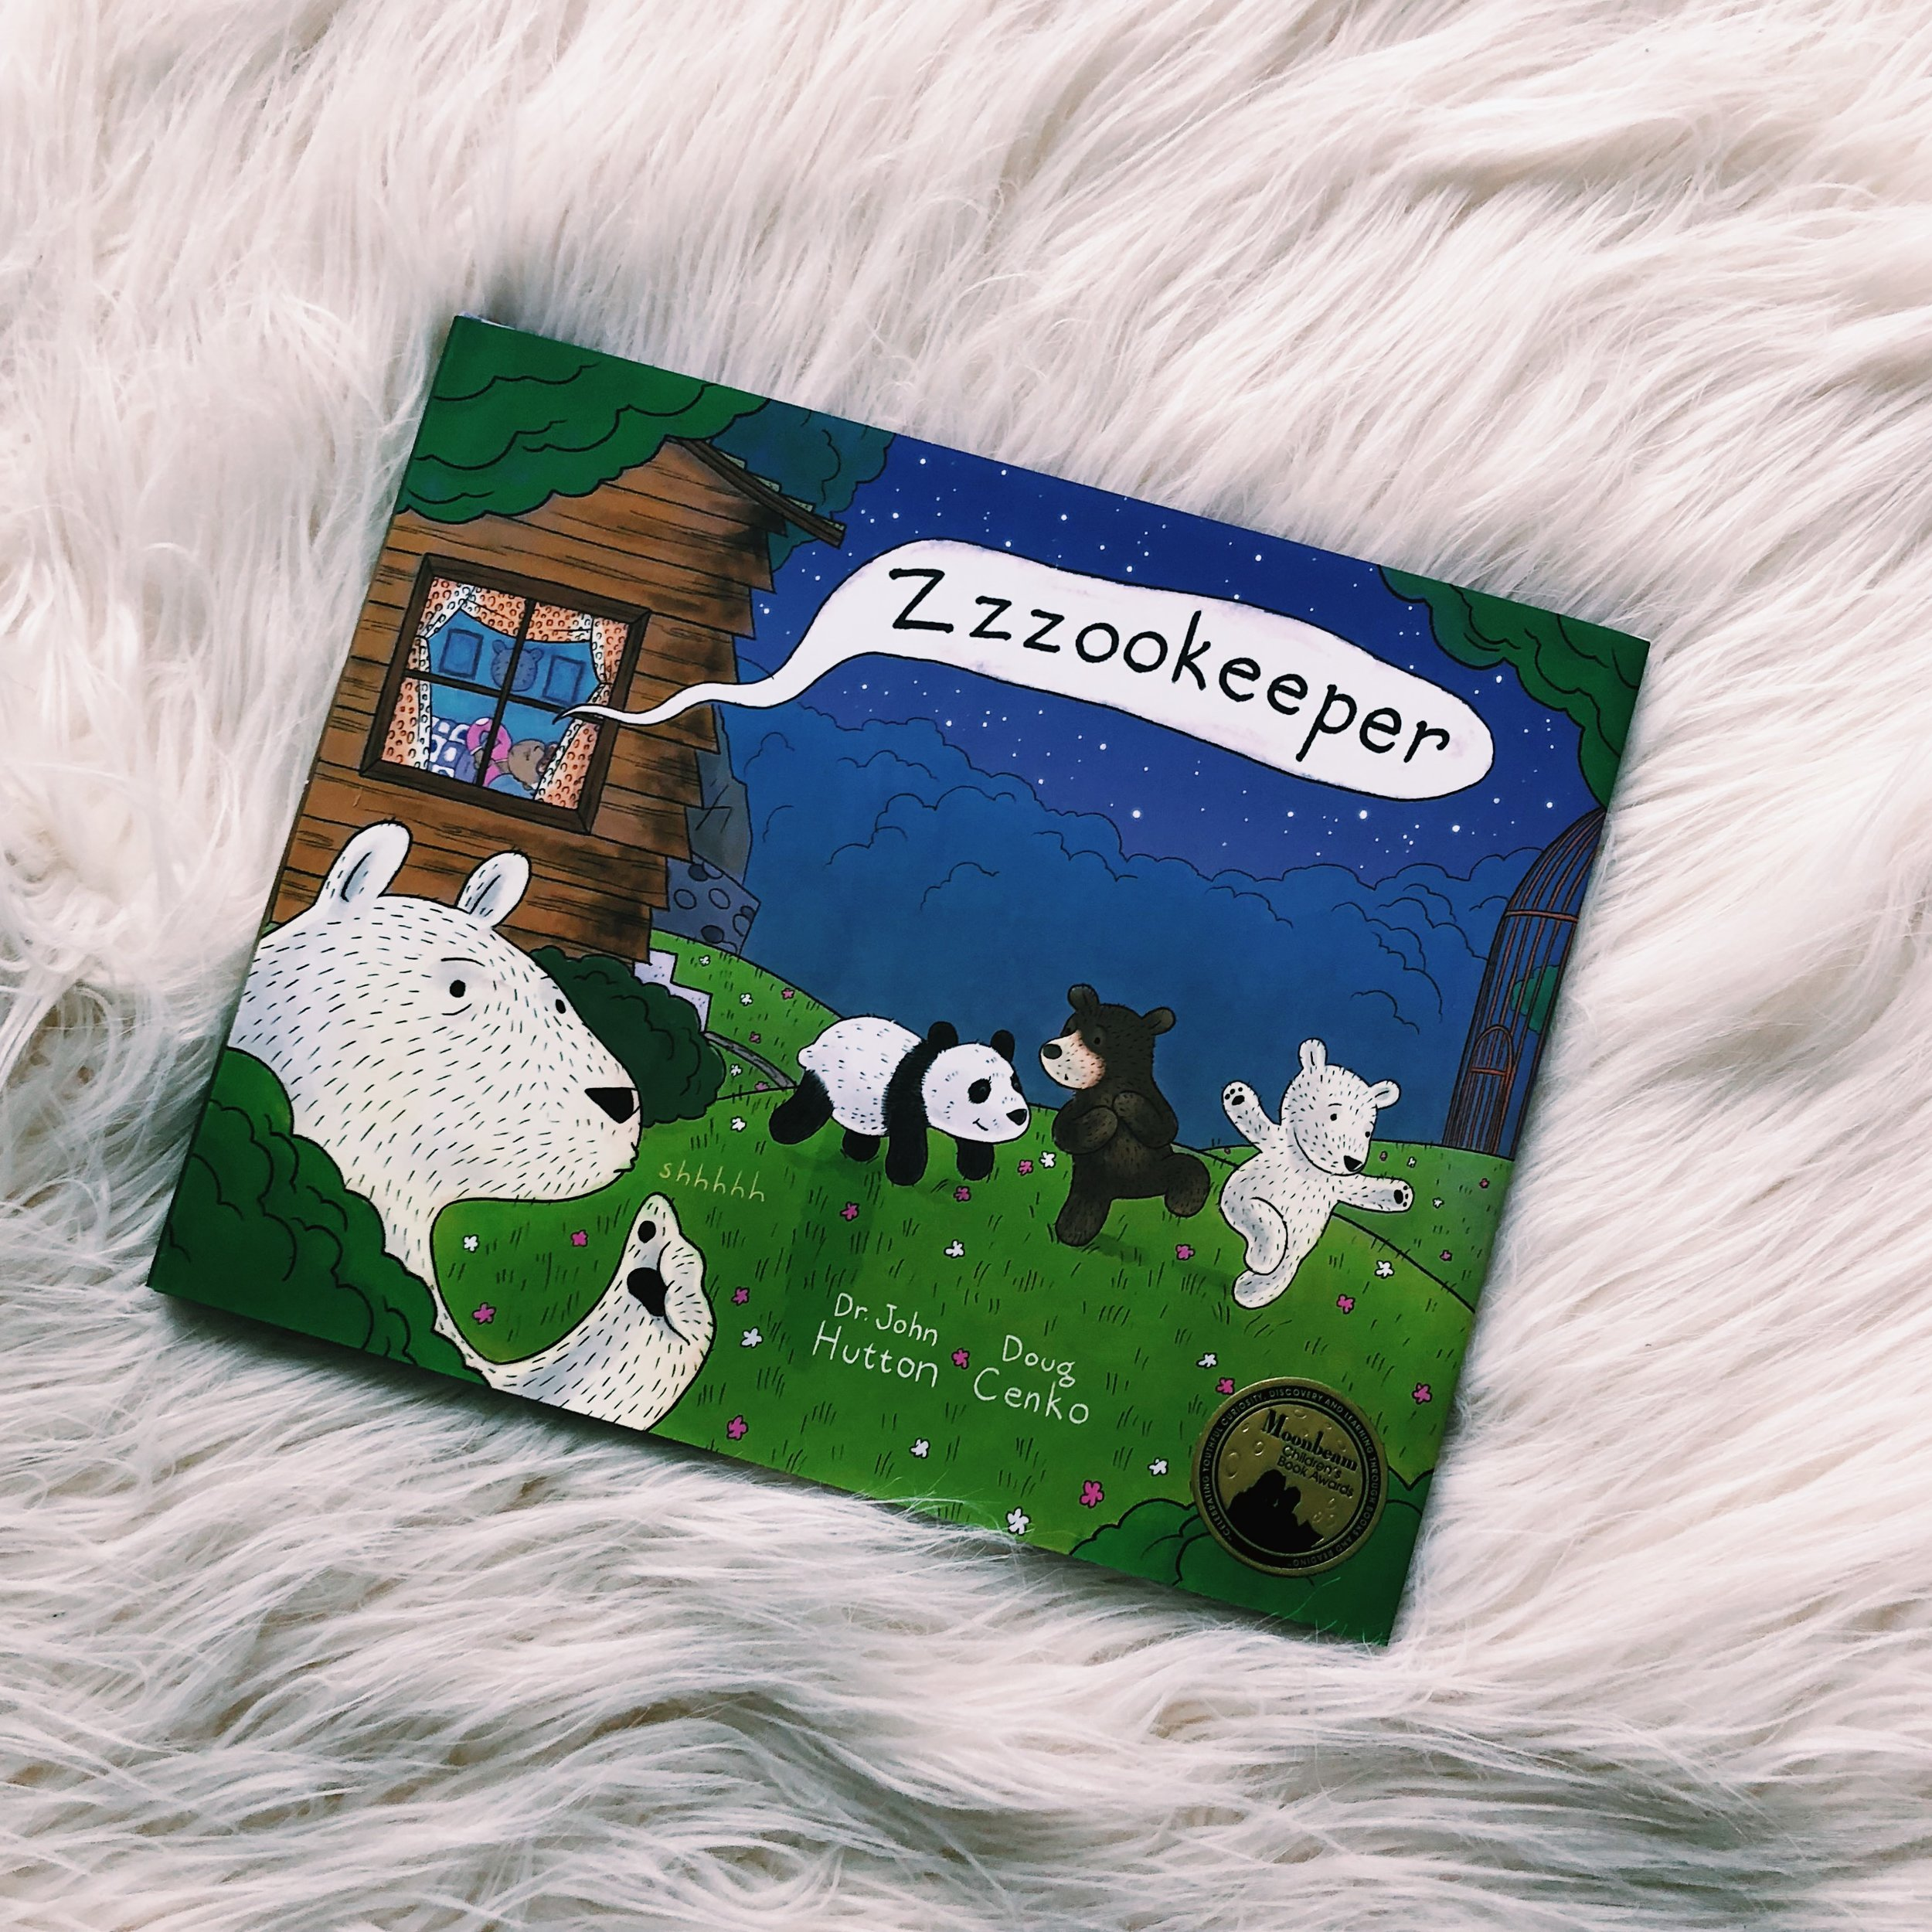 Order  Zzzookeeper    here!